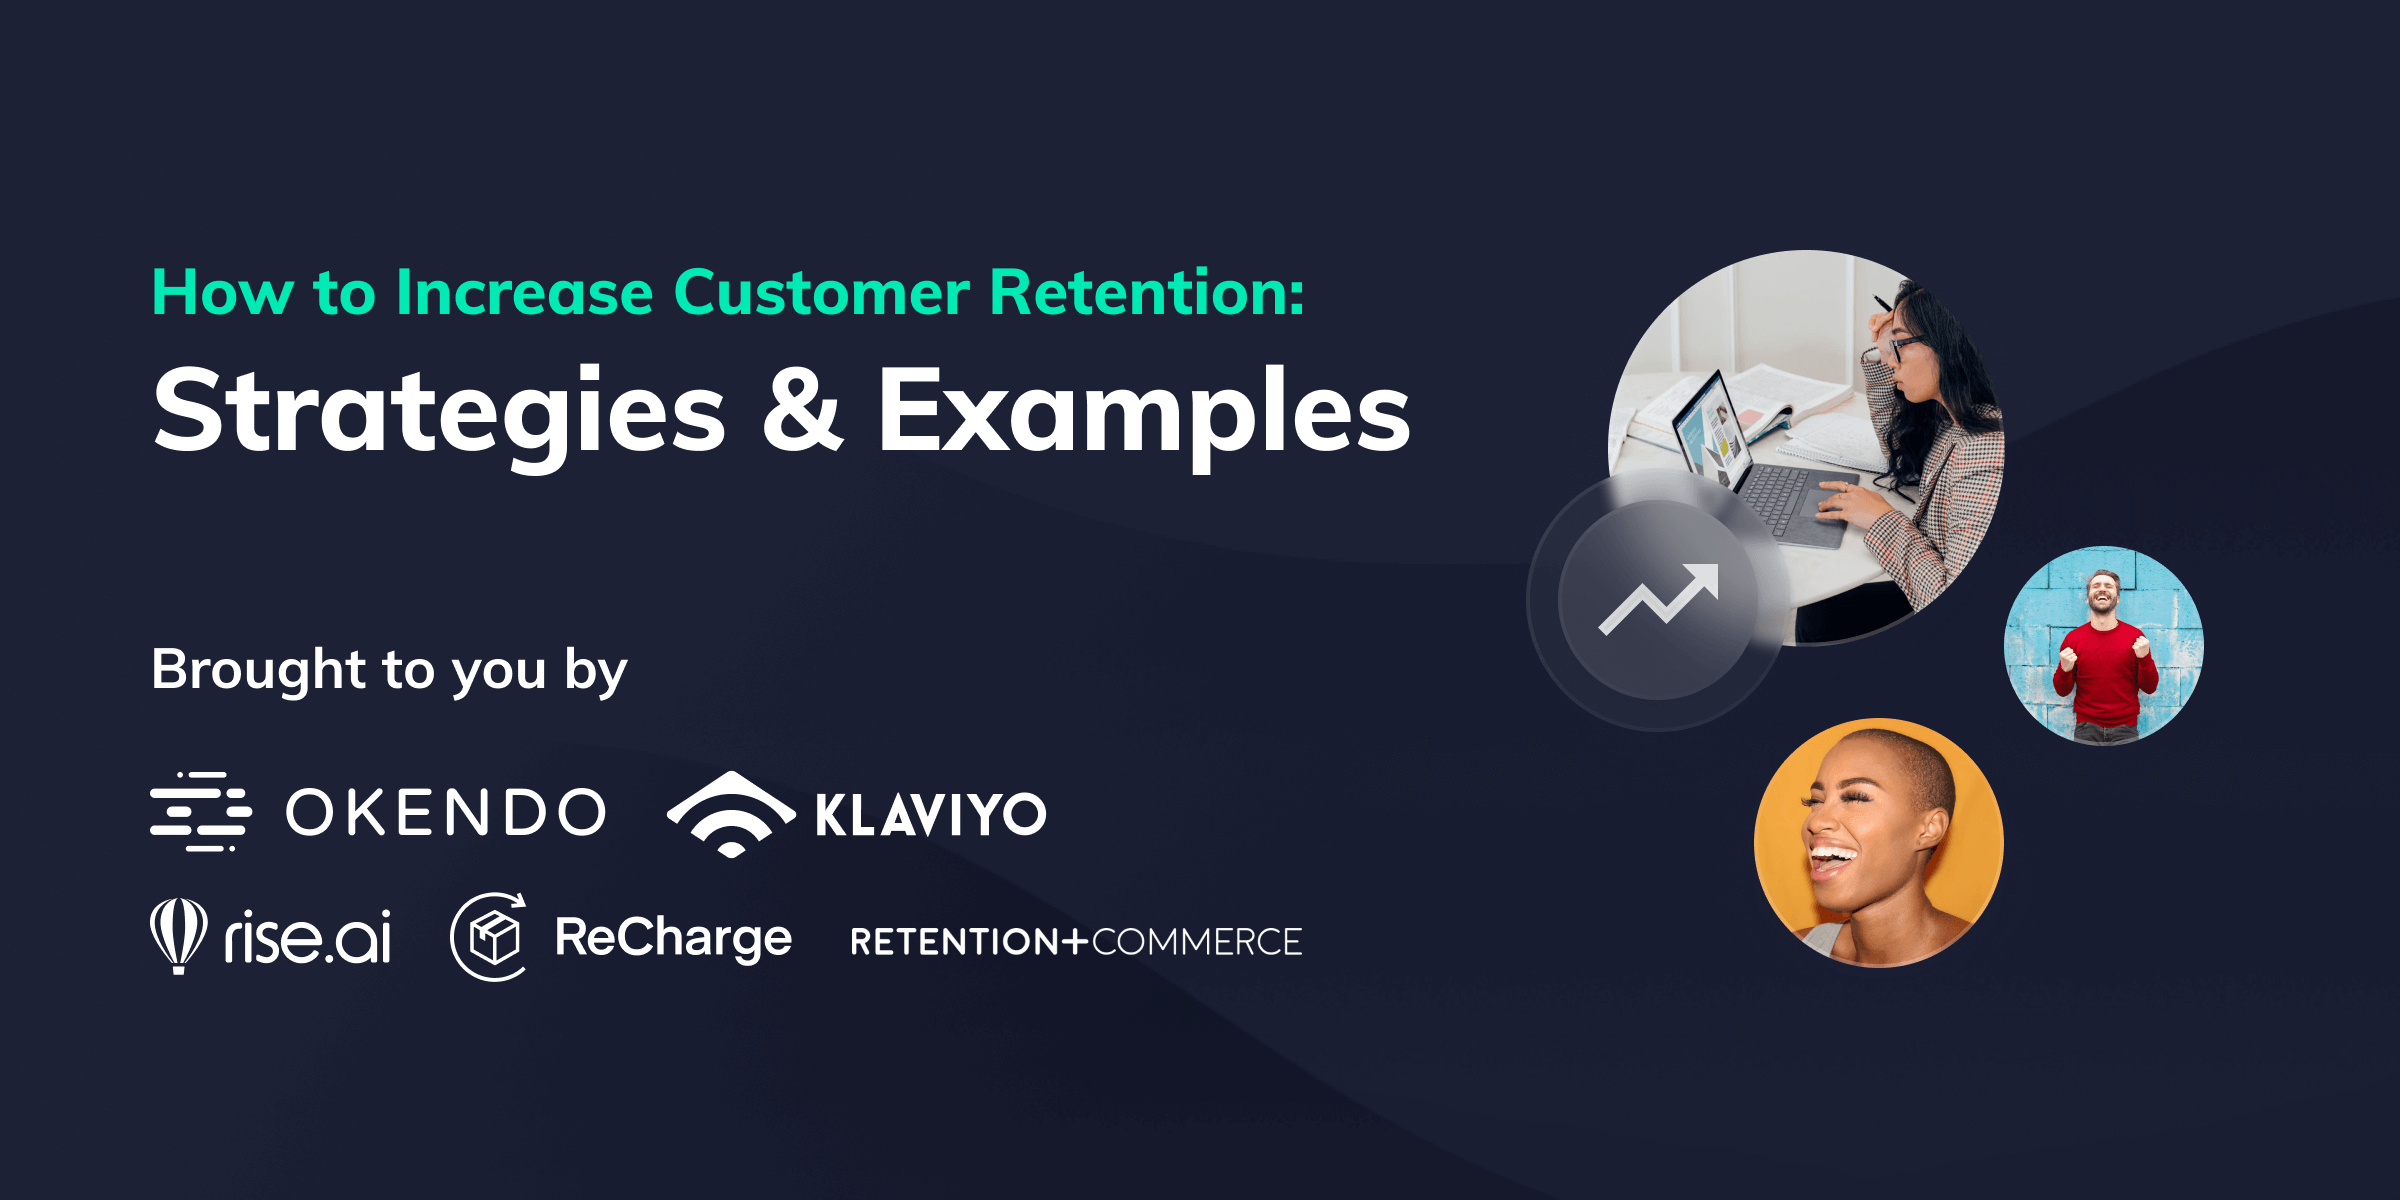 How to Increase Customer Retention: Strategies & Examples